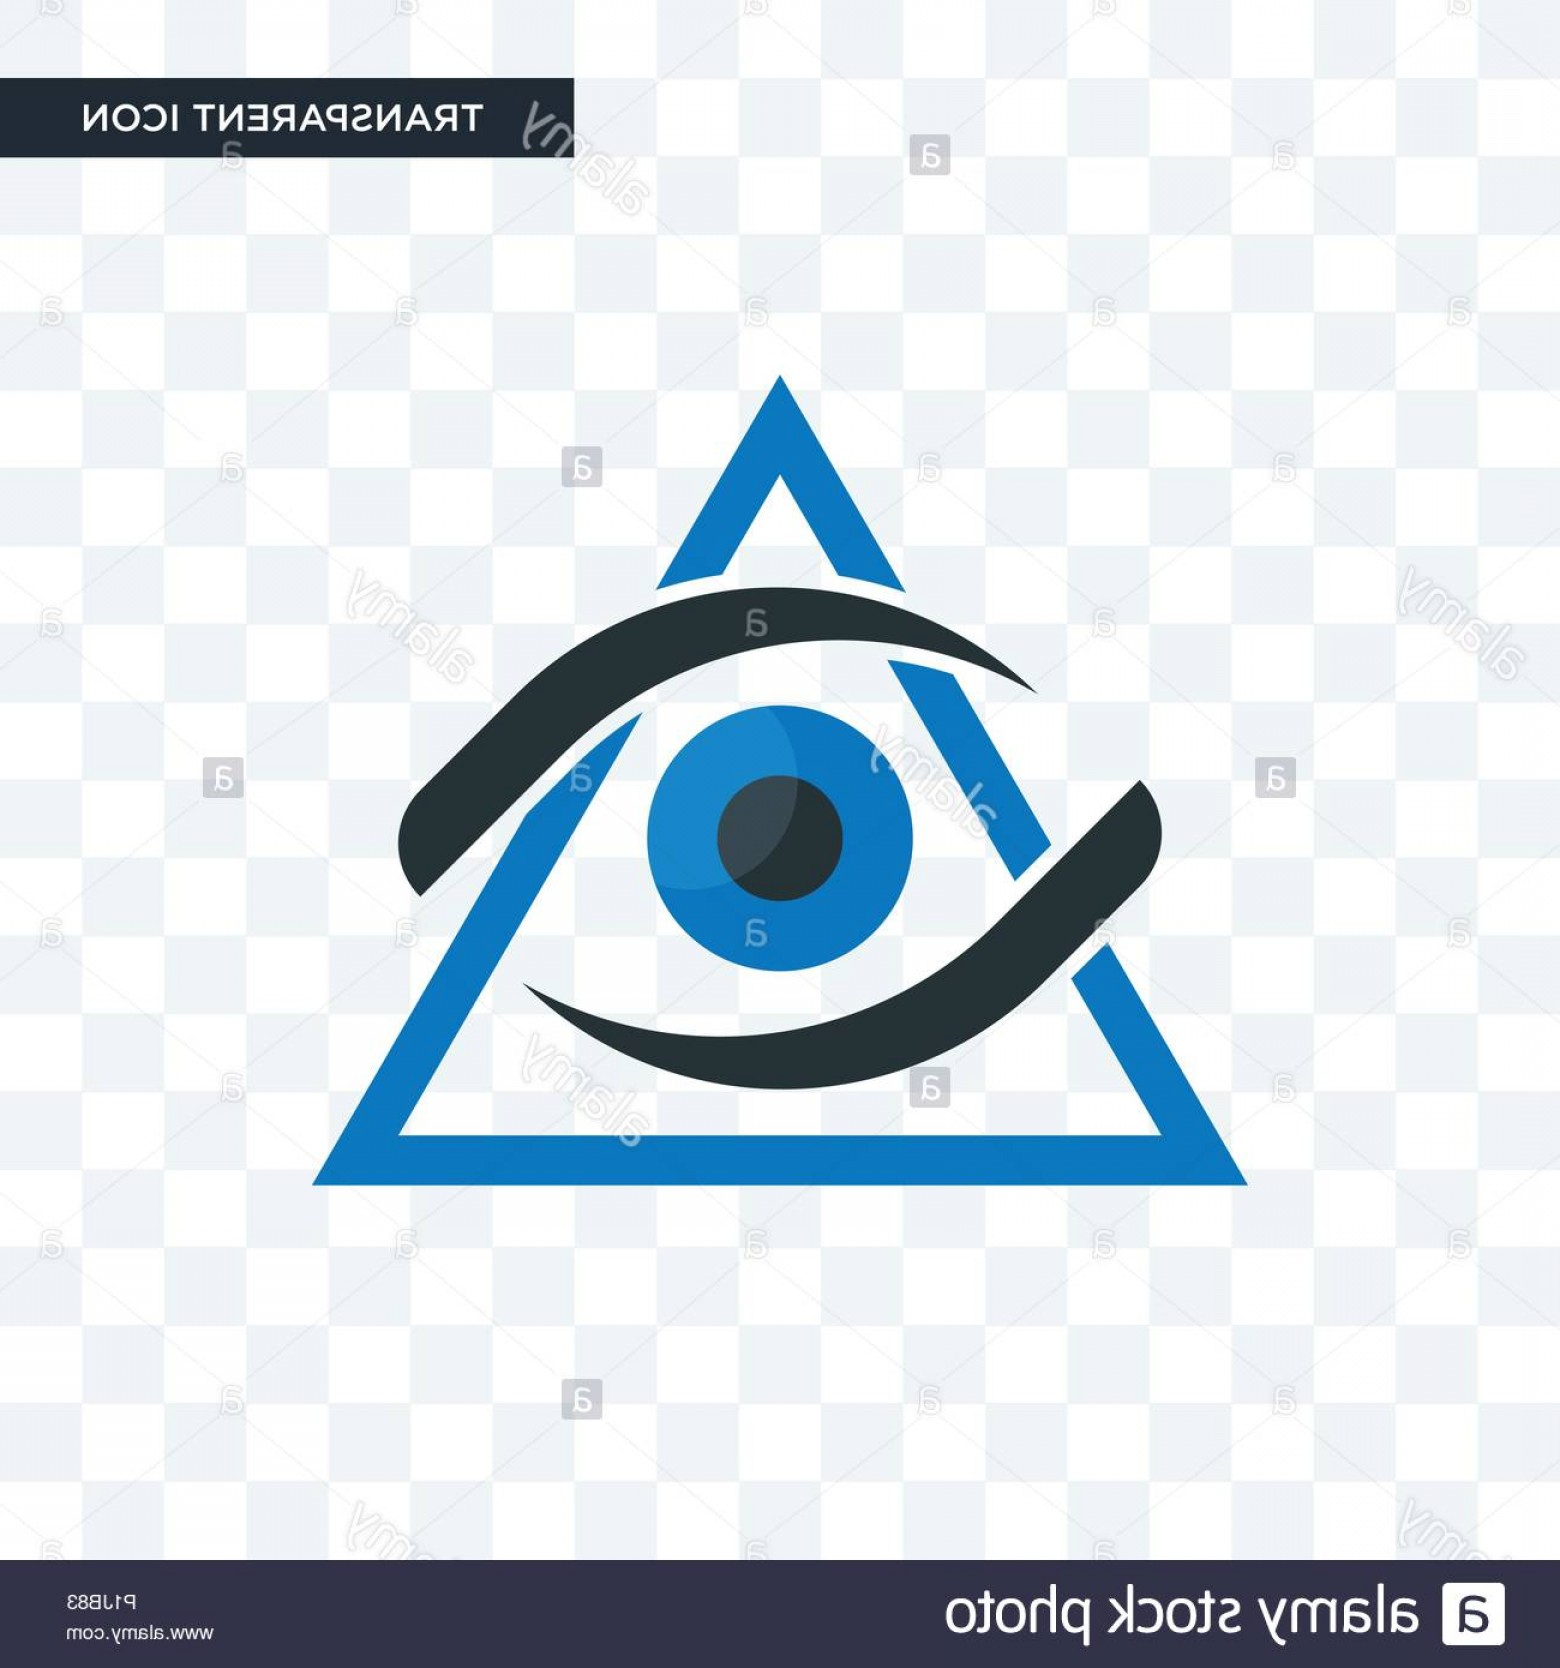 Eye Vector Logo: Third Eye Vector Icon Isolated On Transparent Background Third Eye Logo Concept Image